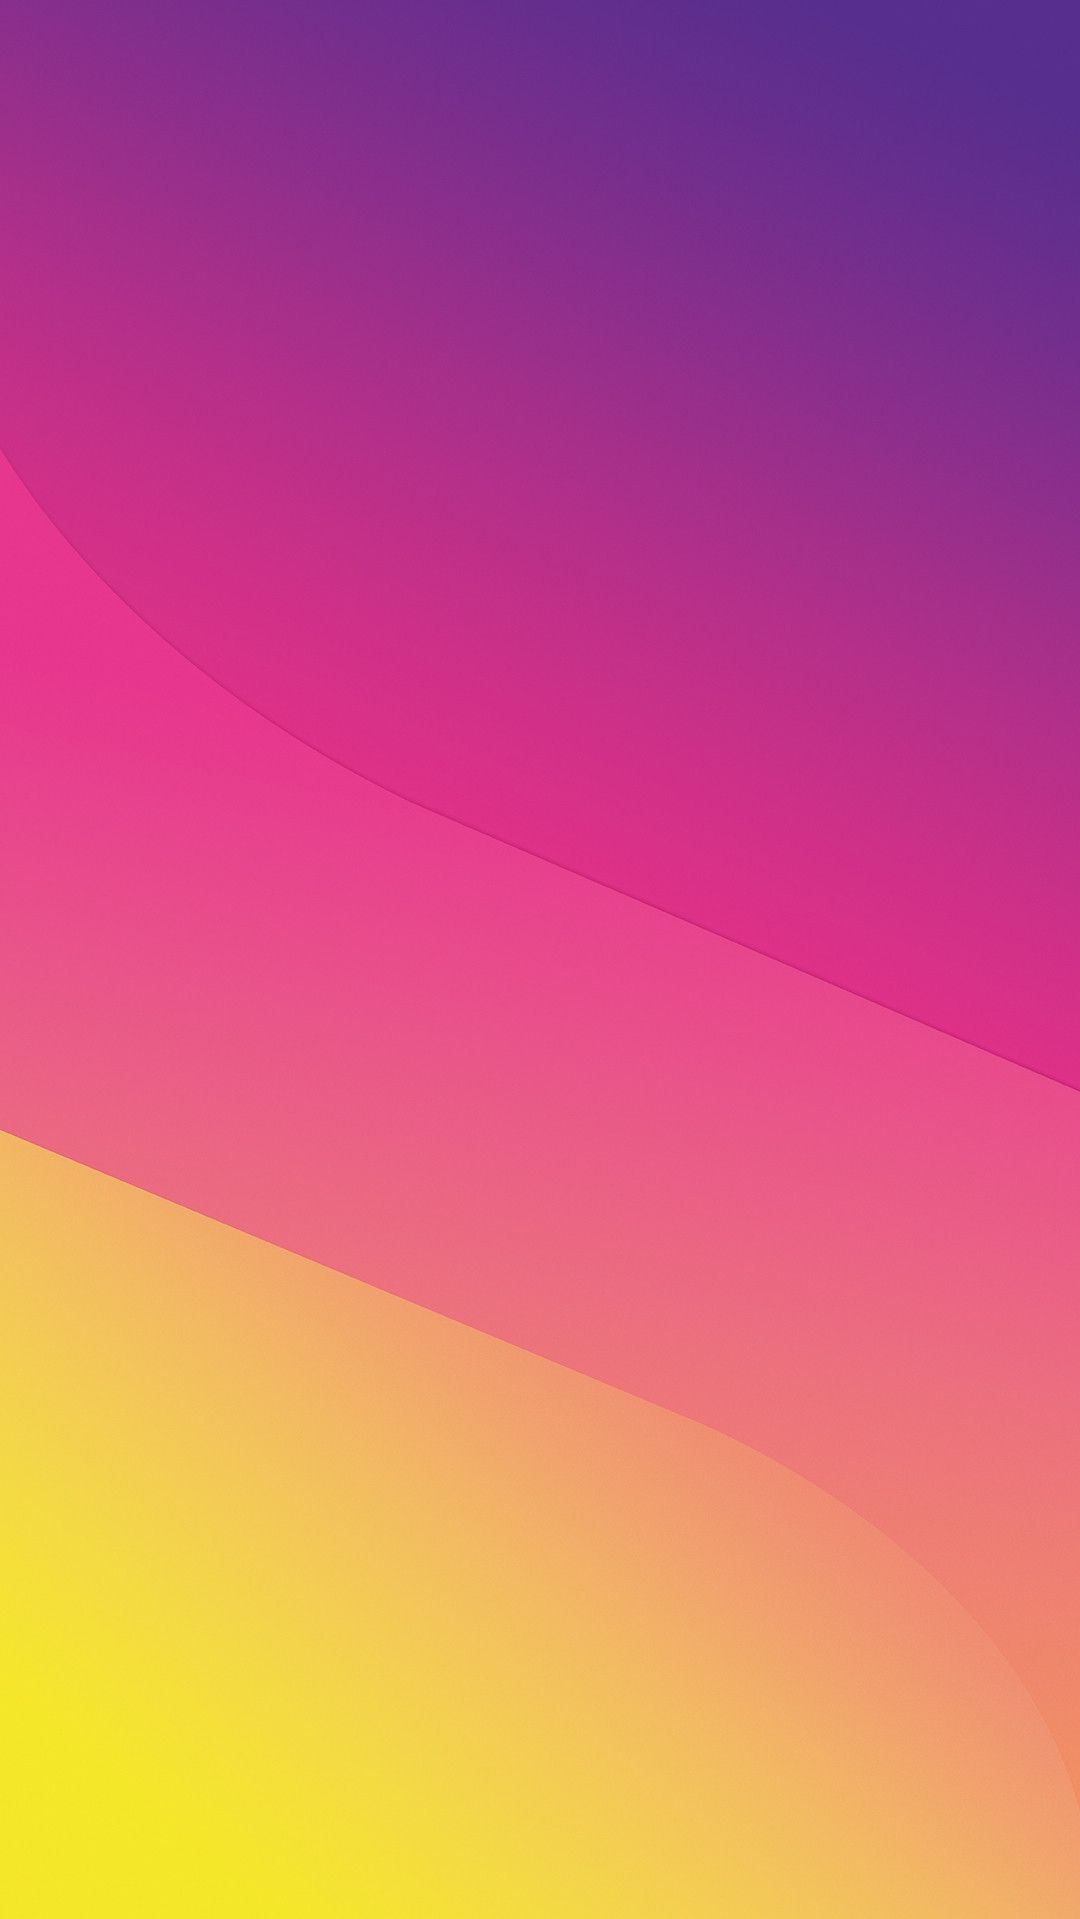 Get Great Wallpaper for iPhone XS /XS Max 2019